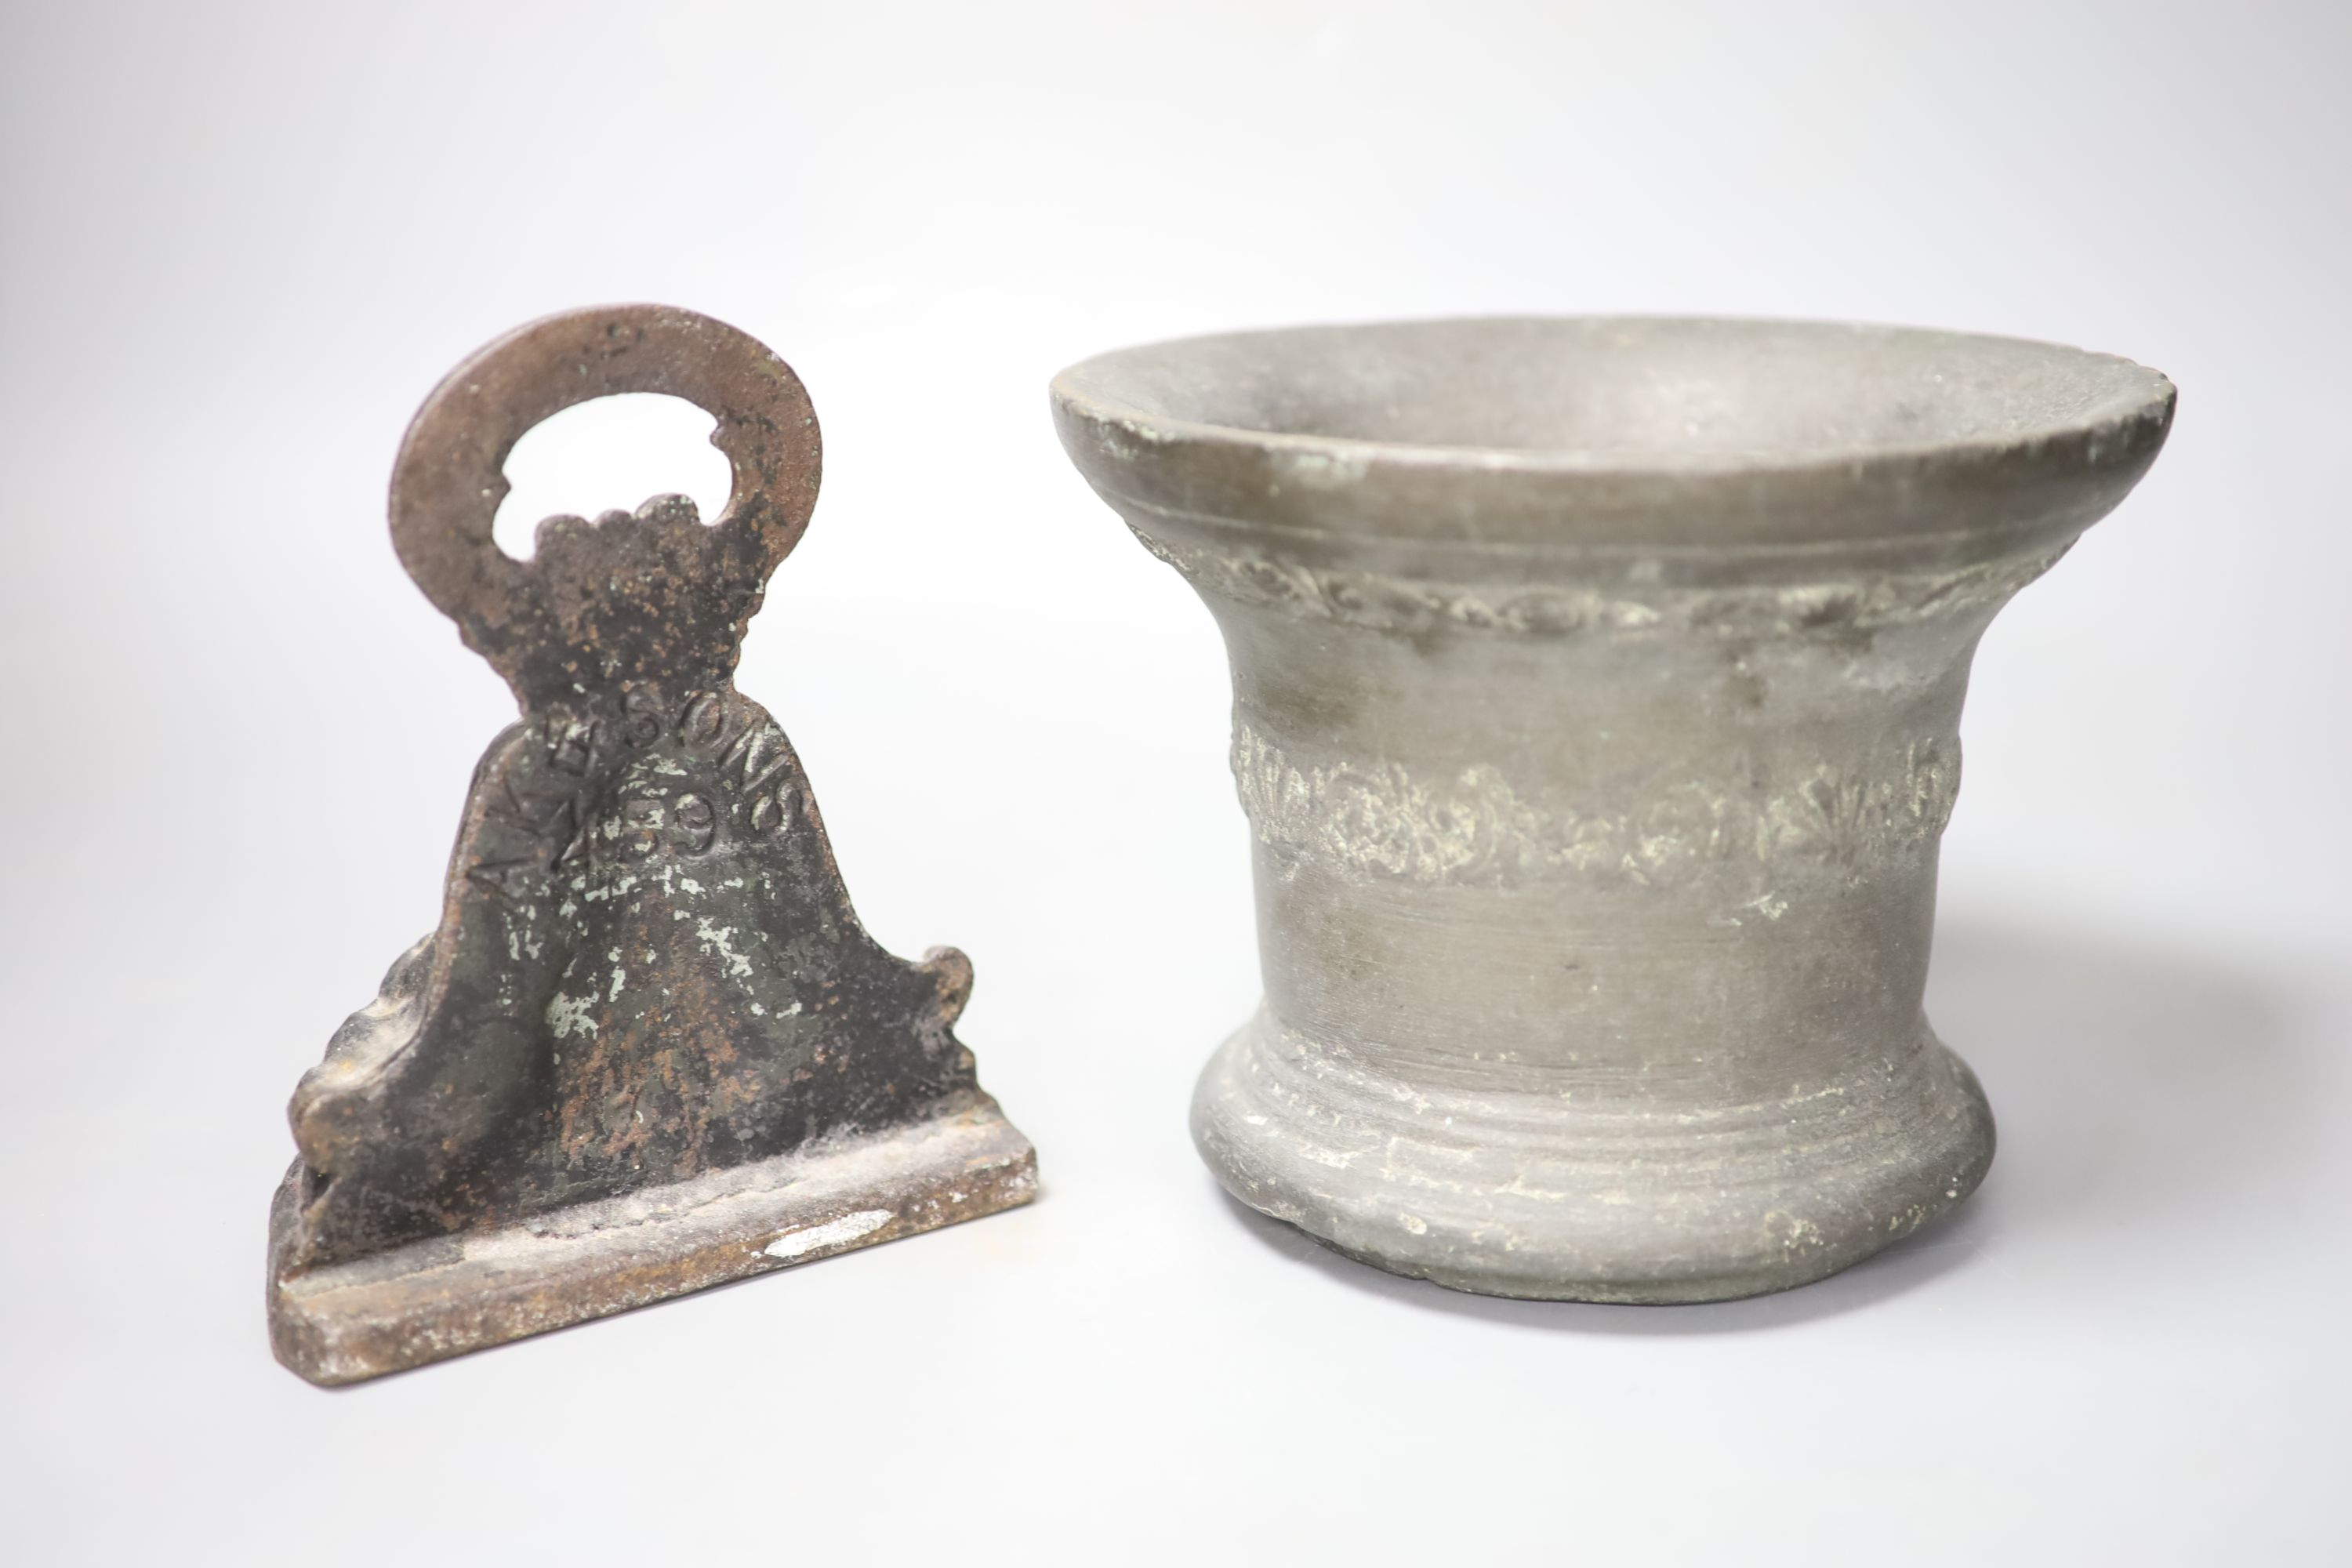 A 16th/17th century bronze mortar, height 16cm, and a cast iron doorstop - Image 2 of 3